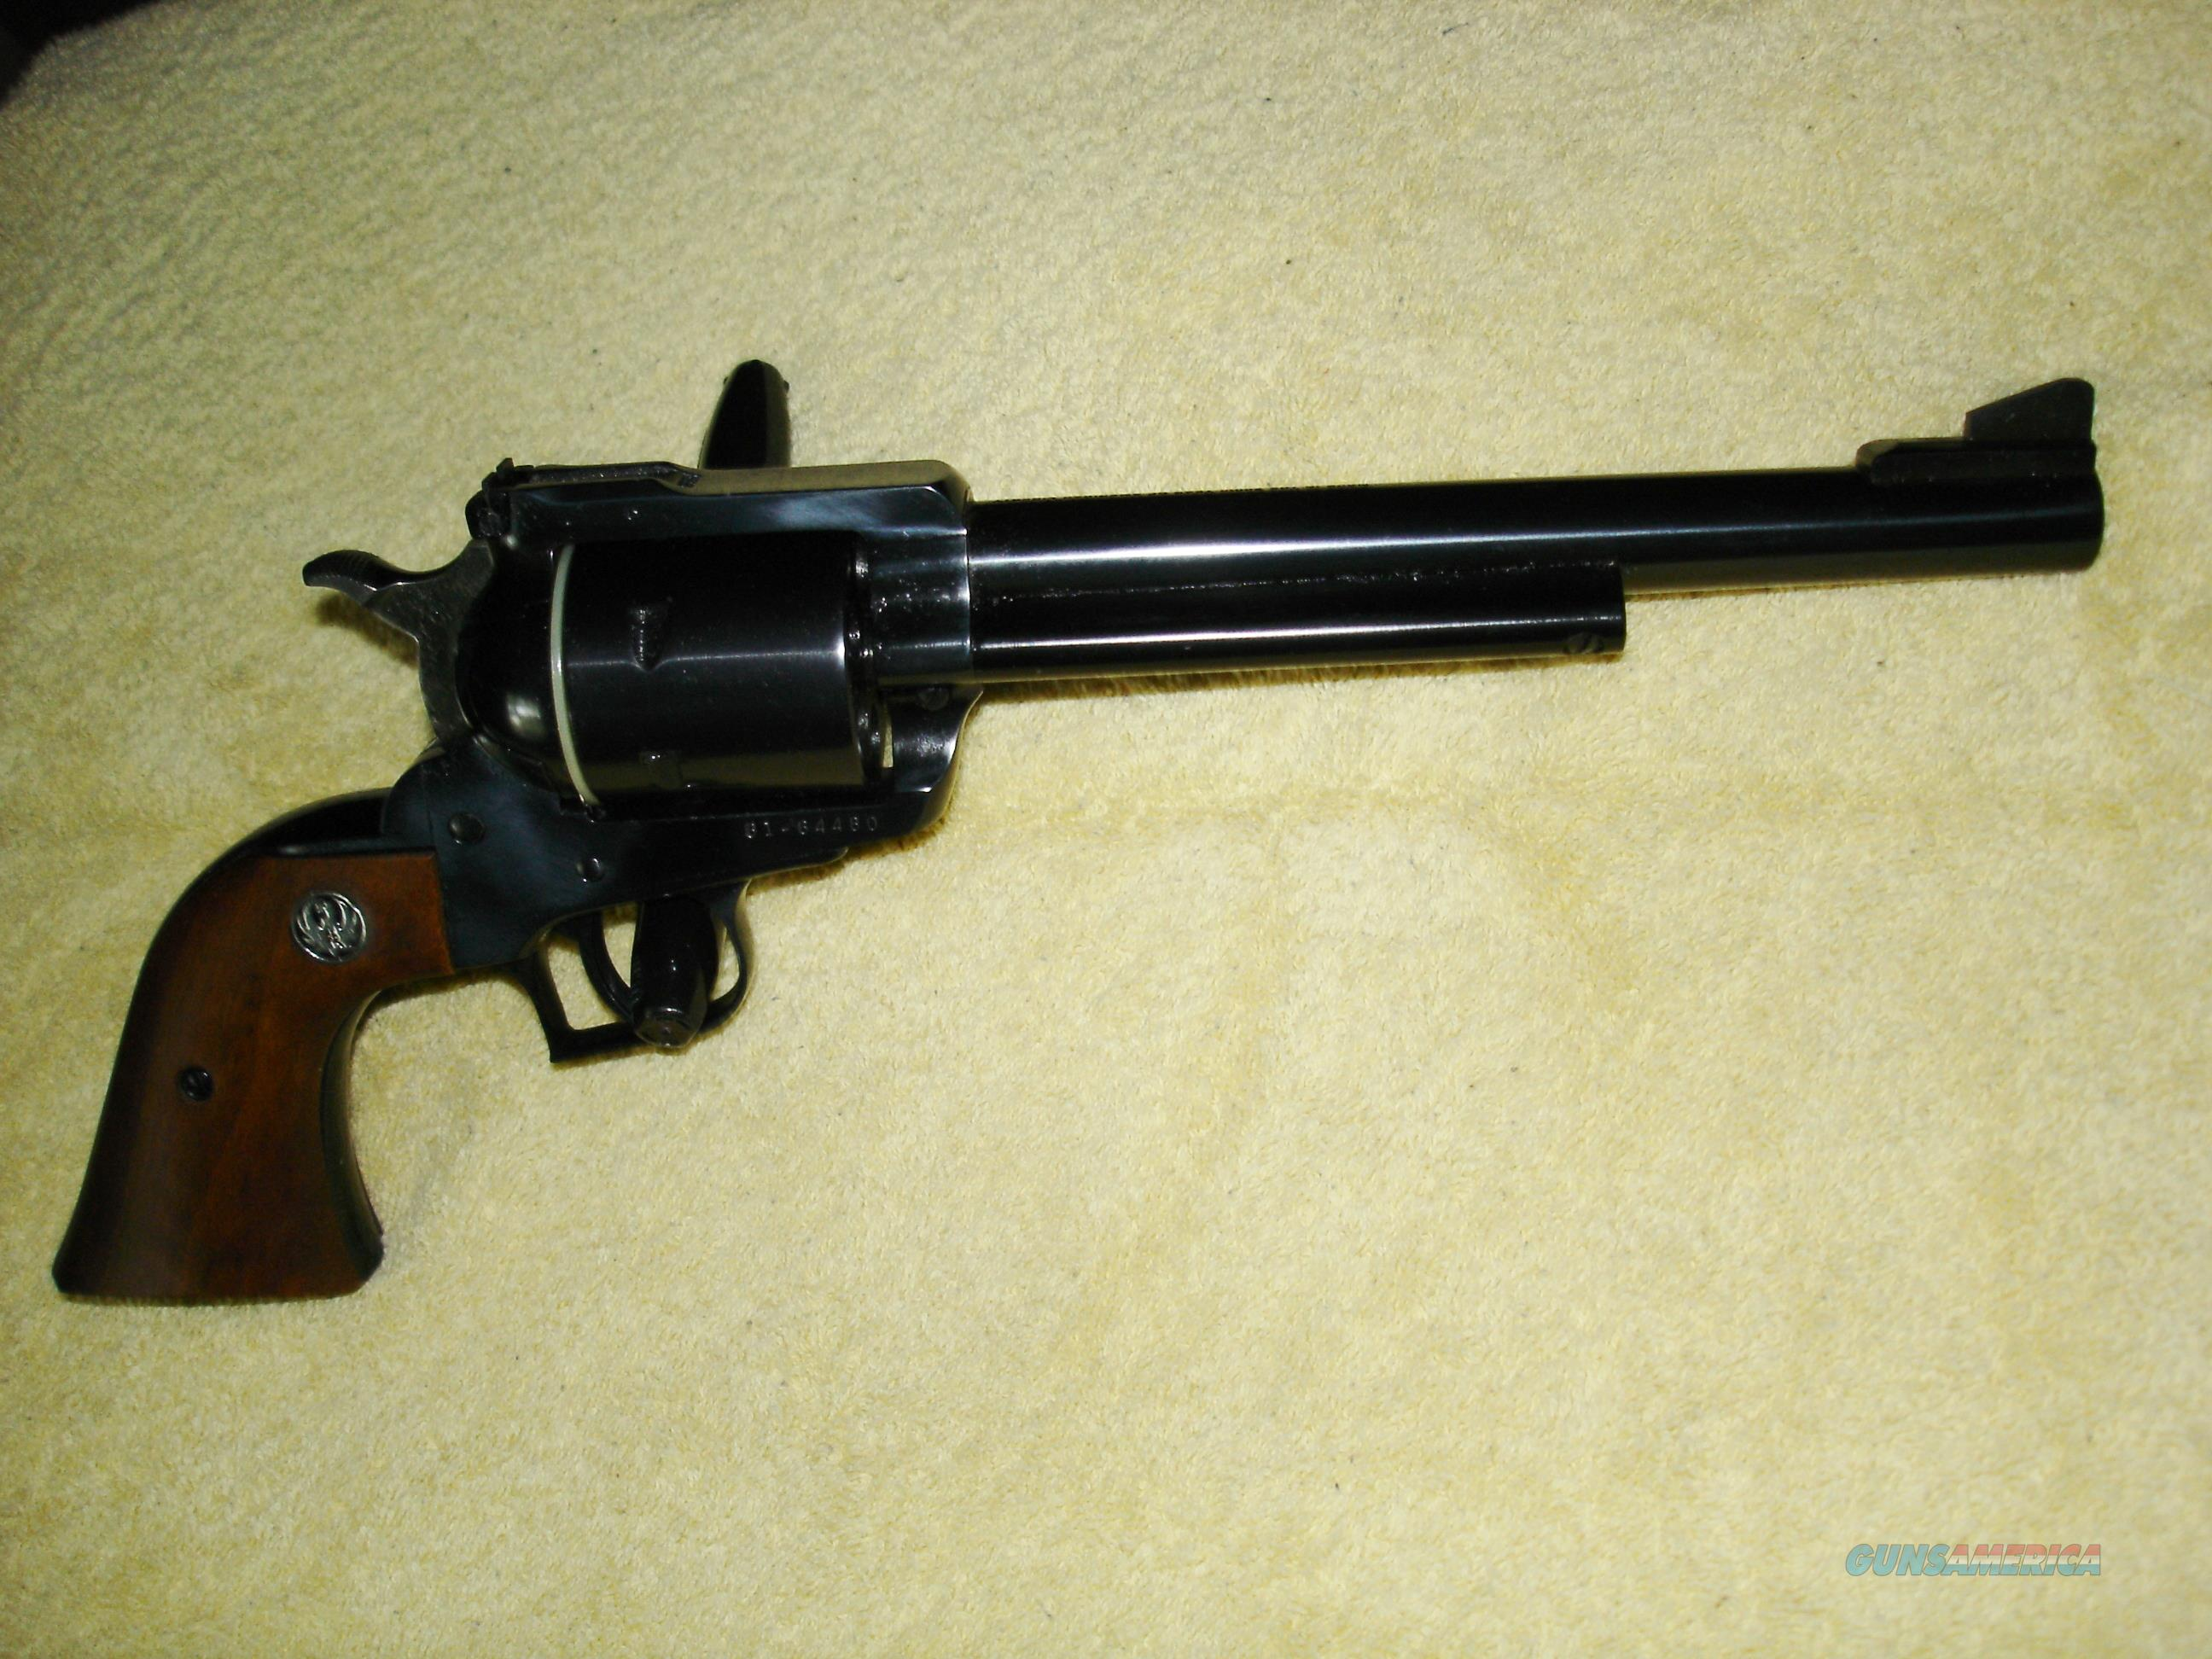 """Ruger Super Blackhawk .44M/.44 Spec. """"200th Year"""" (U.S. Bicentennial) Commemorative Model - NIB (One Owner) - Model Produced Only in 1976 - Collectible  Guns > Pistols > Ruger Single Action Revolvers > Blackhawk Type"""